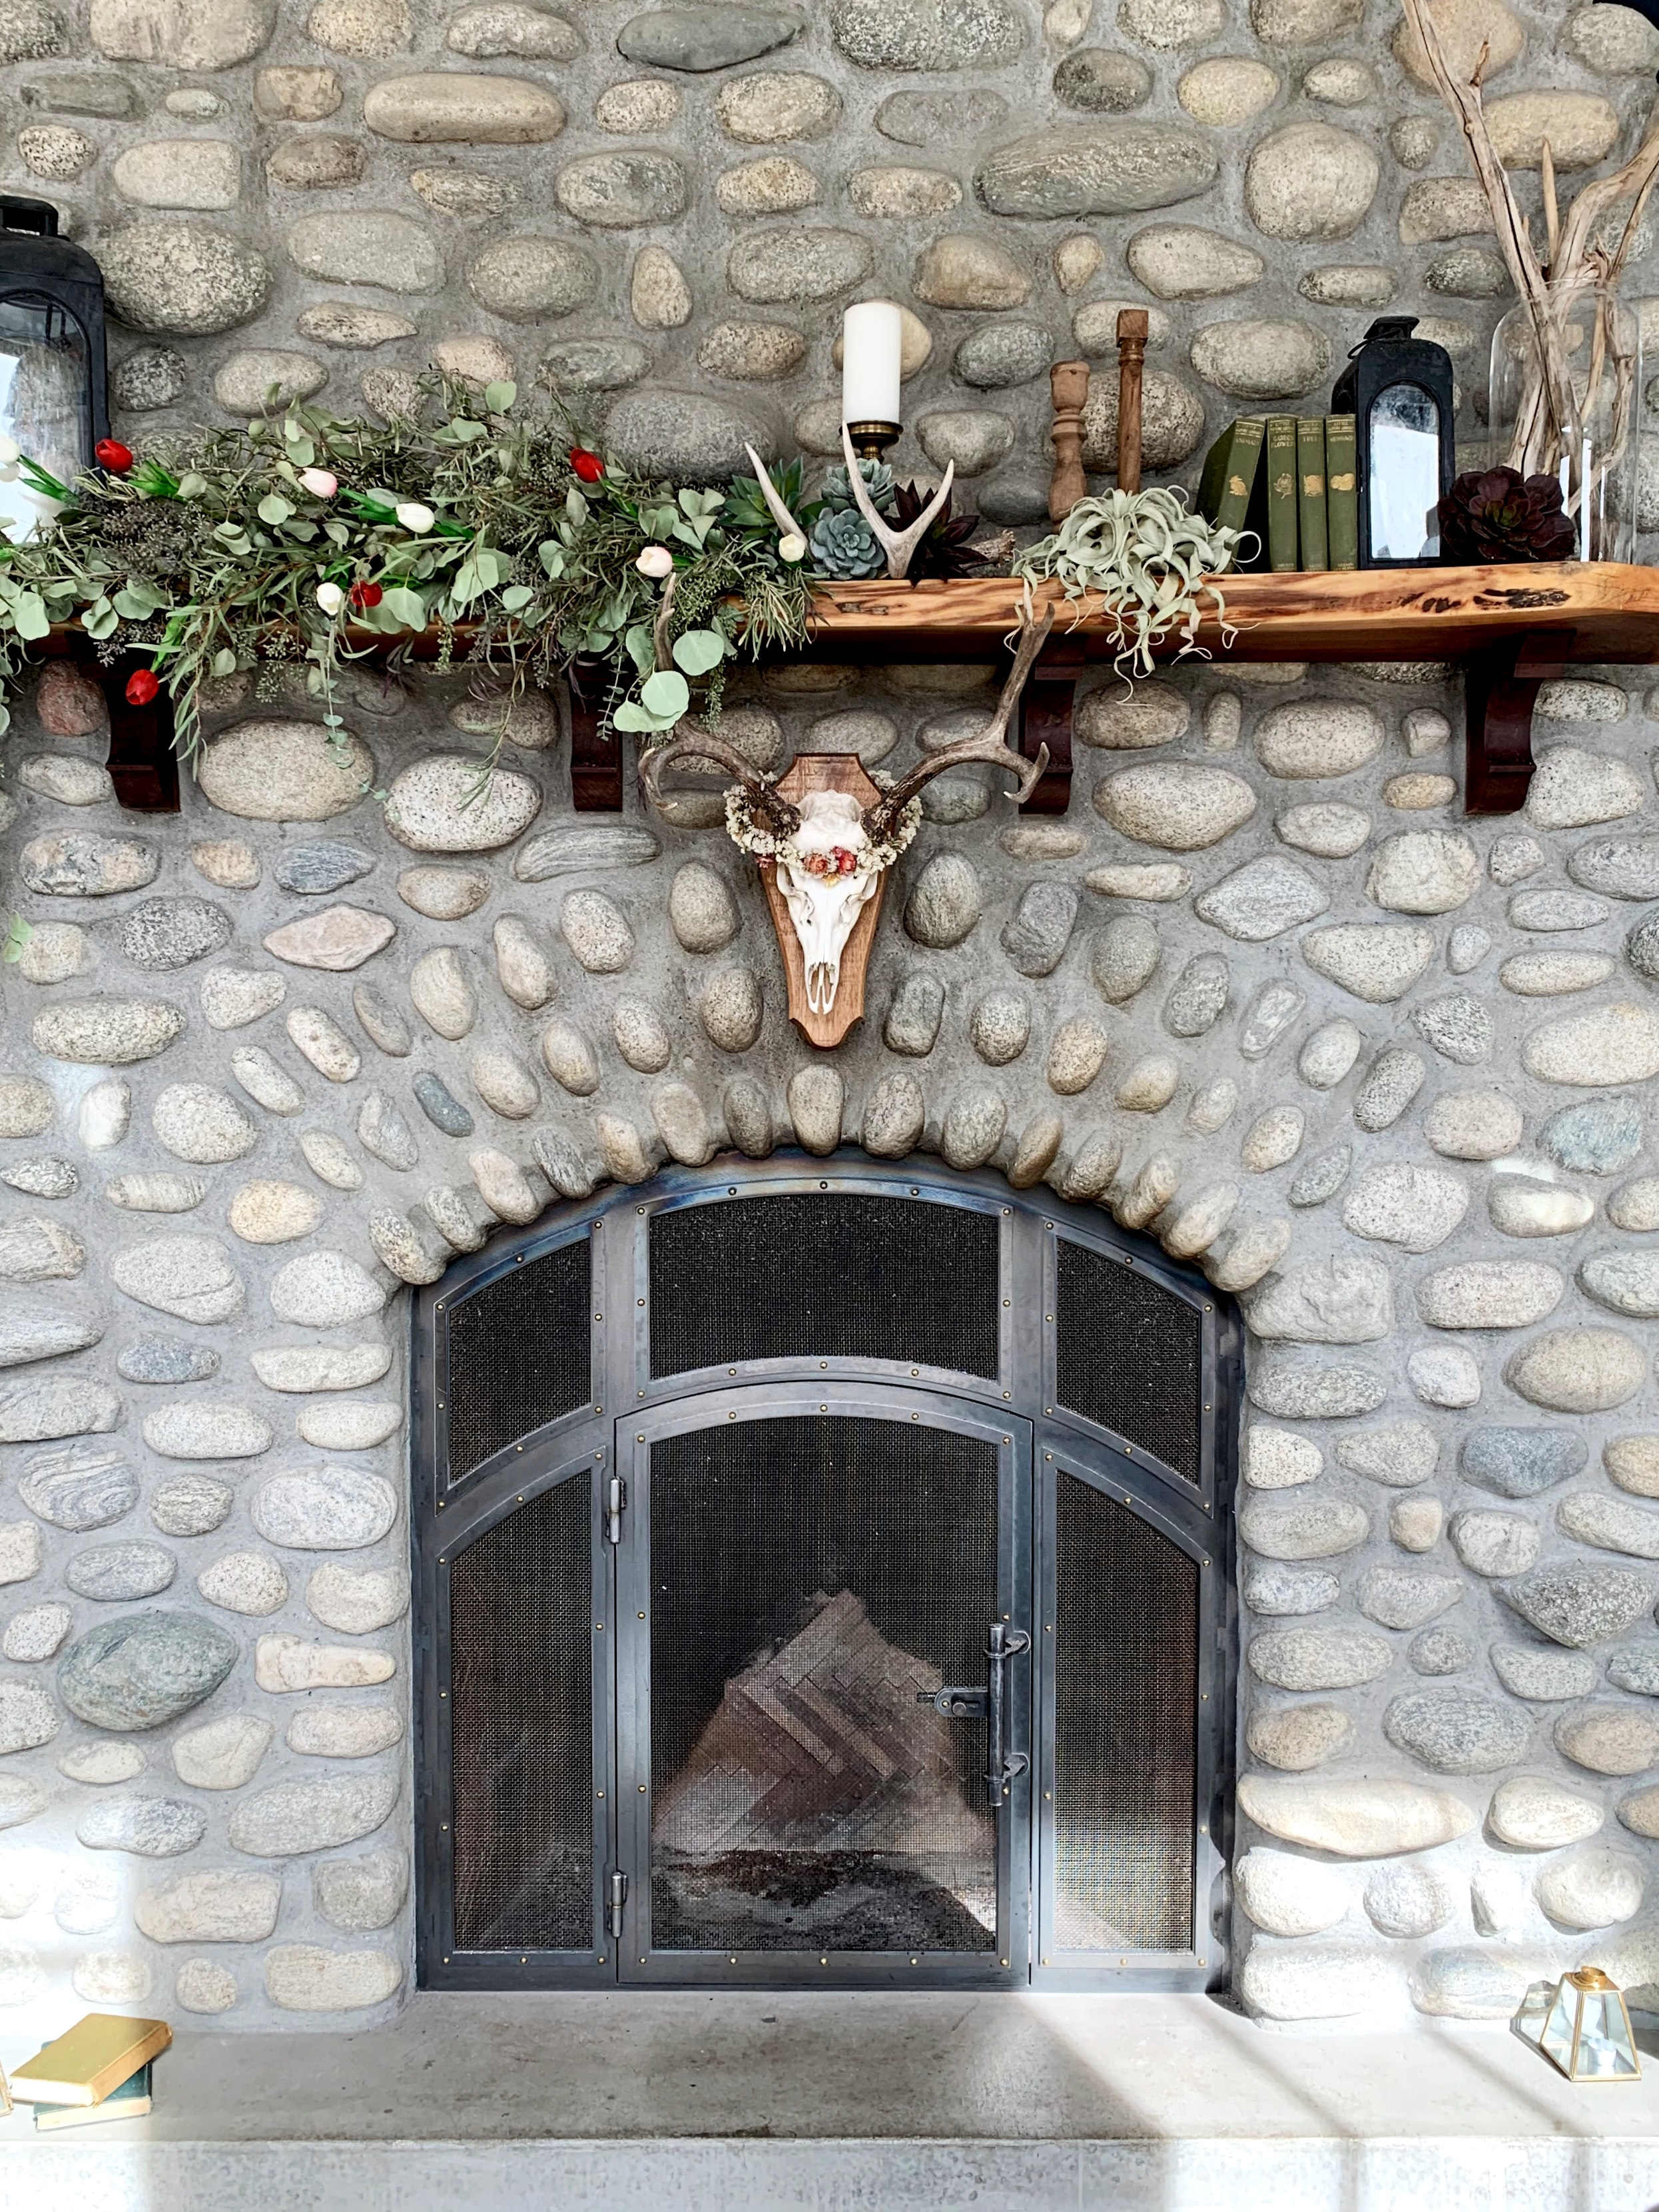 How to Remove Stone Fireplace Facade